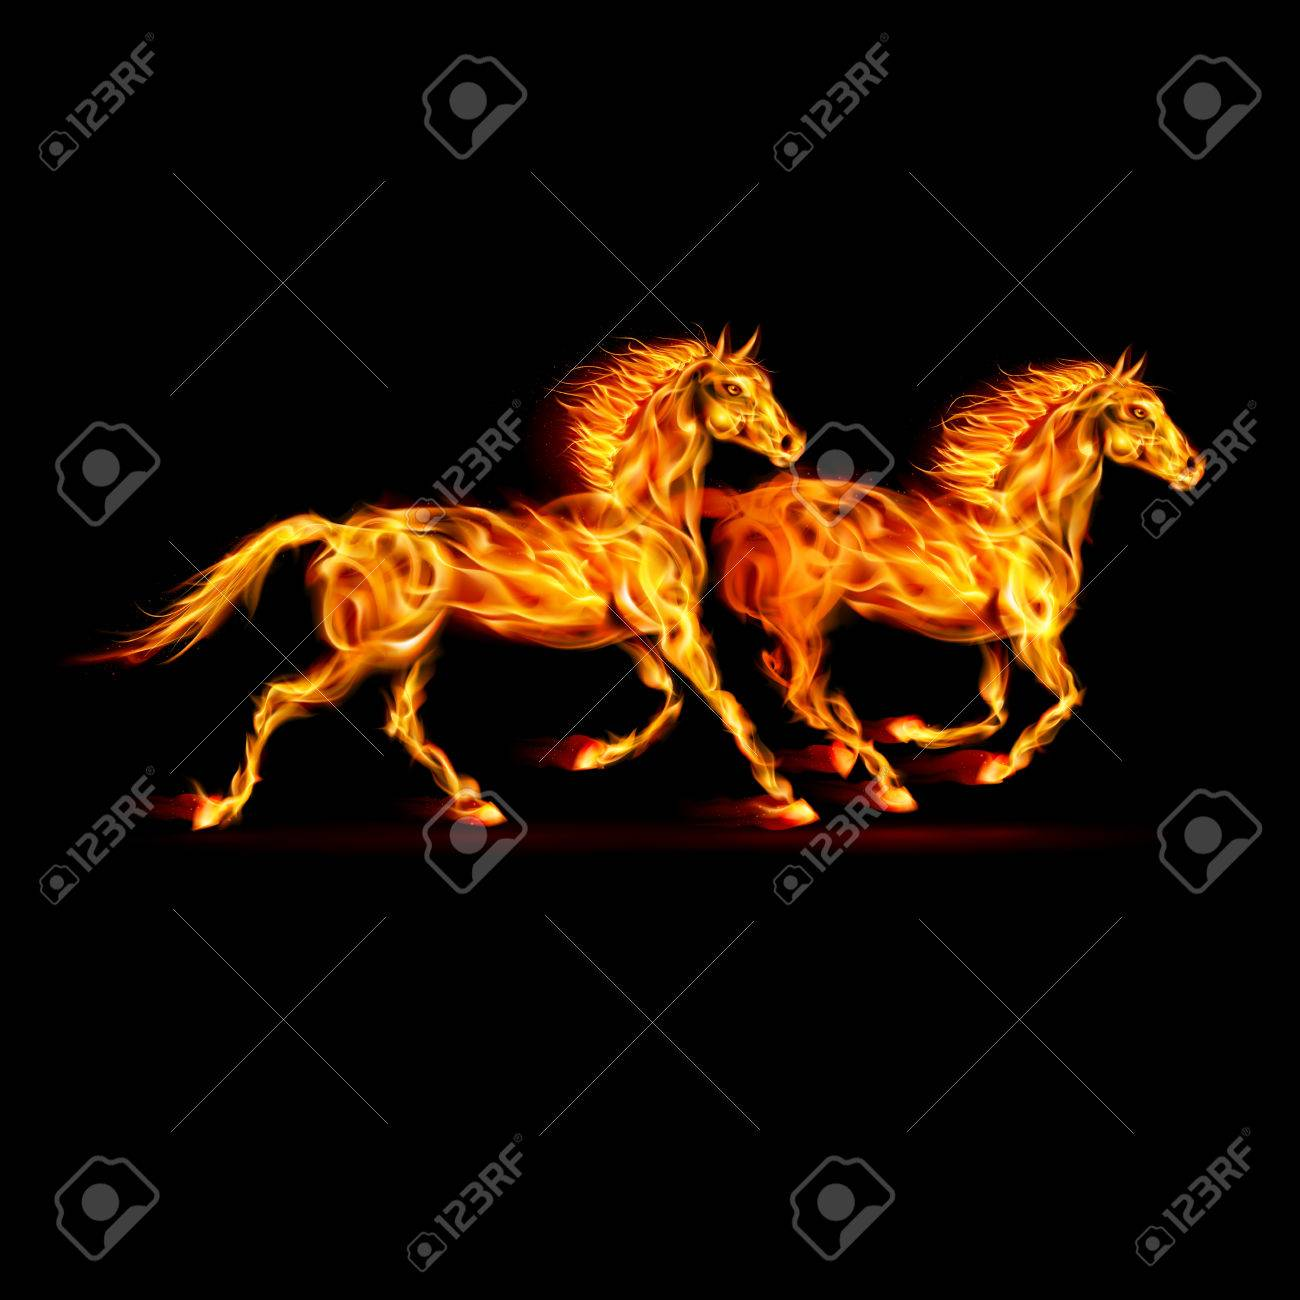 Two running fire horses on black background. Stock Vector - 22910084